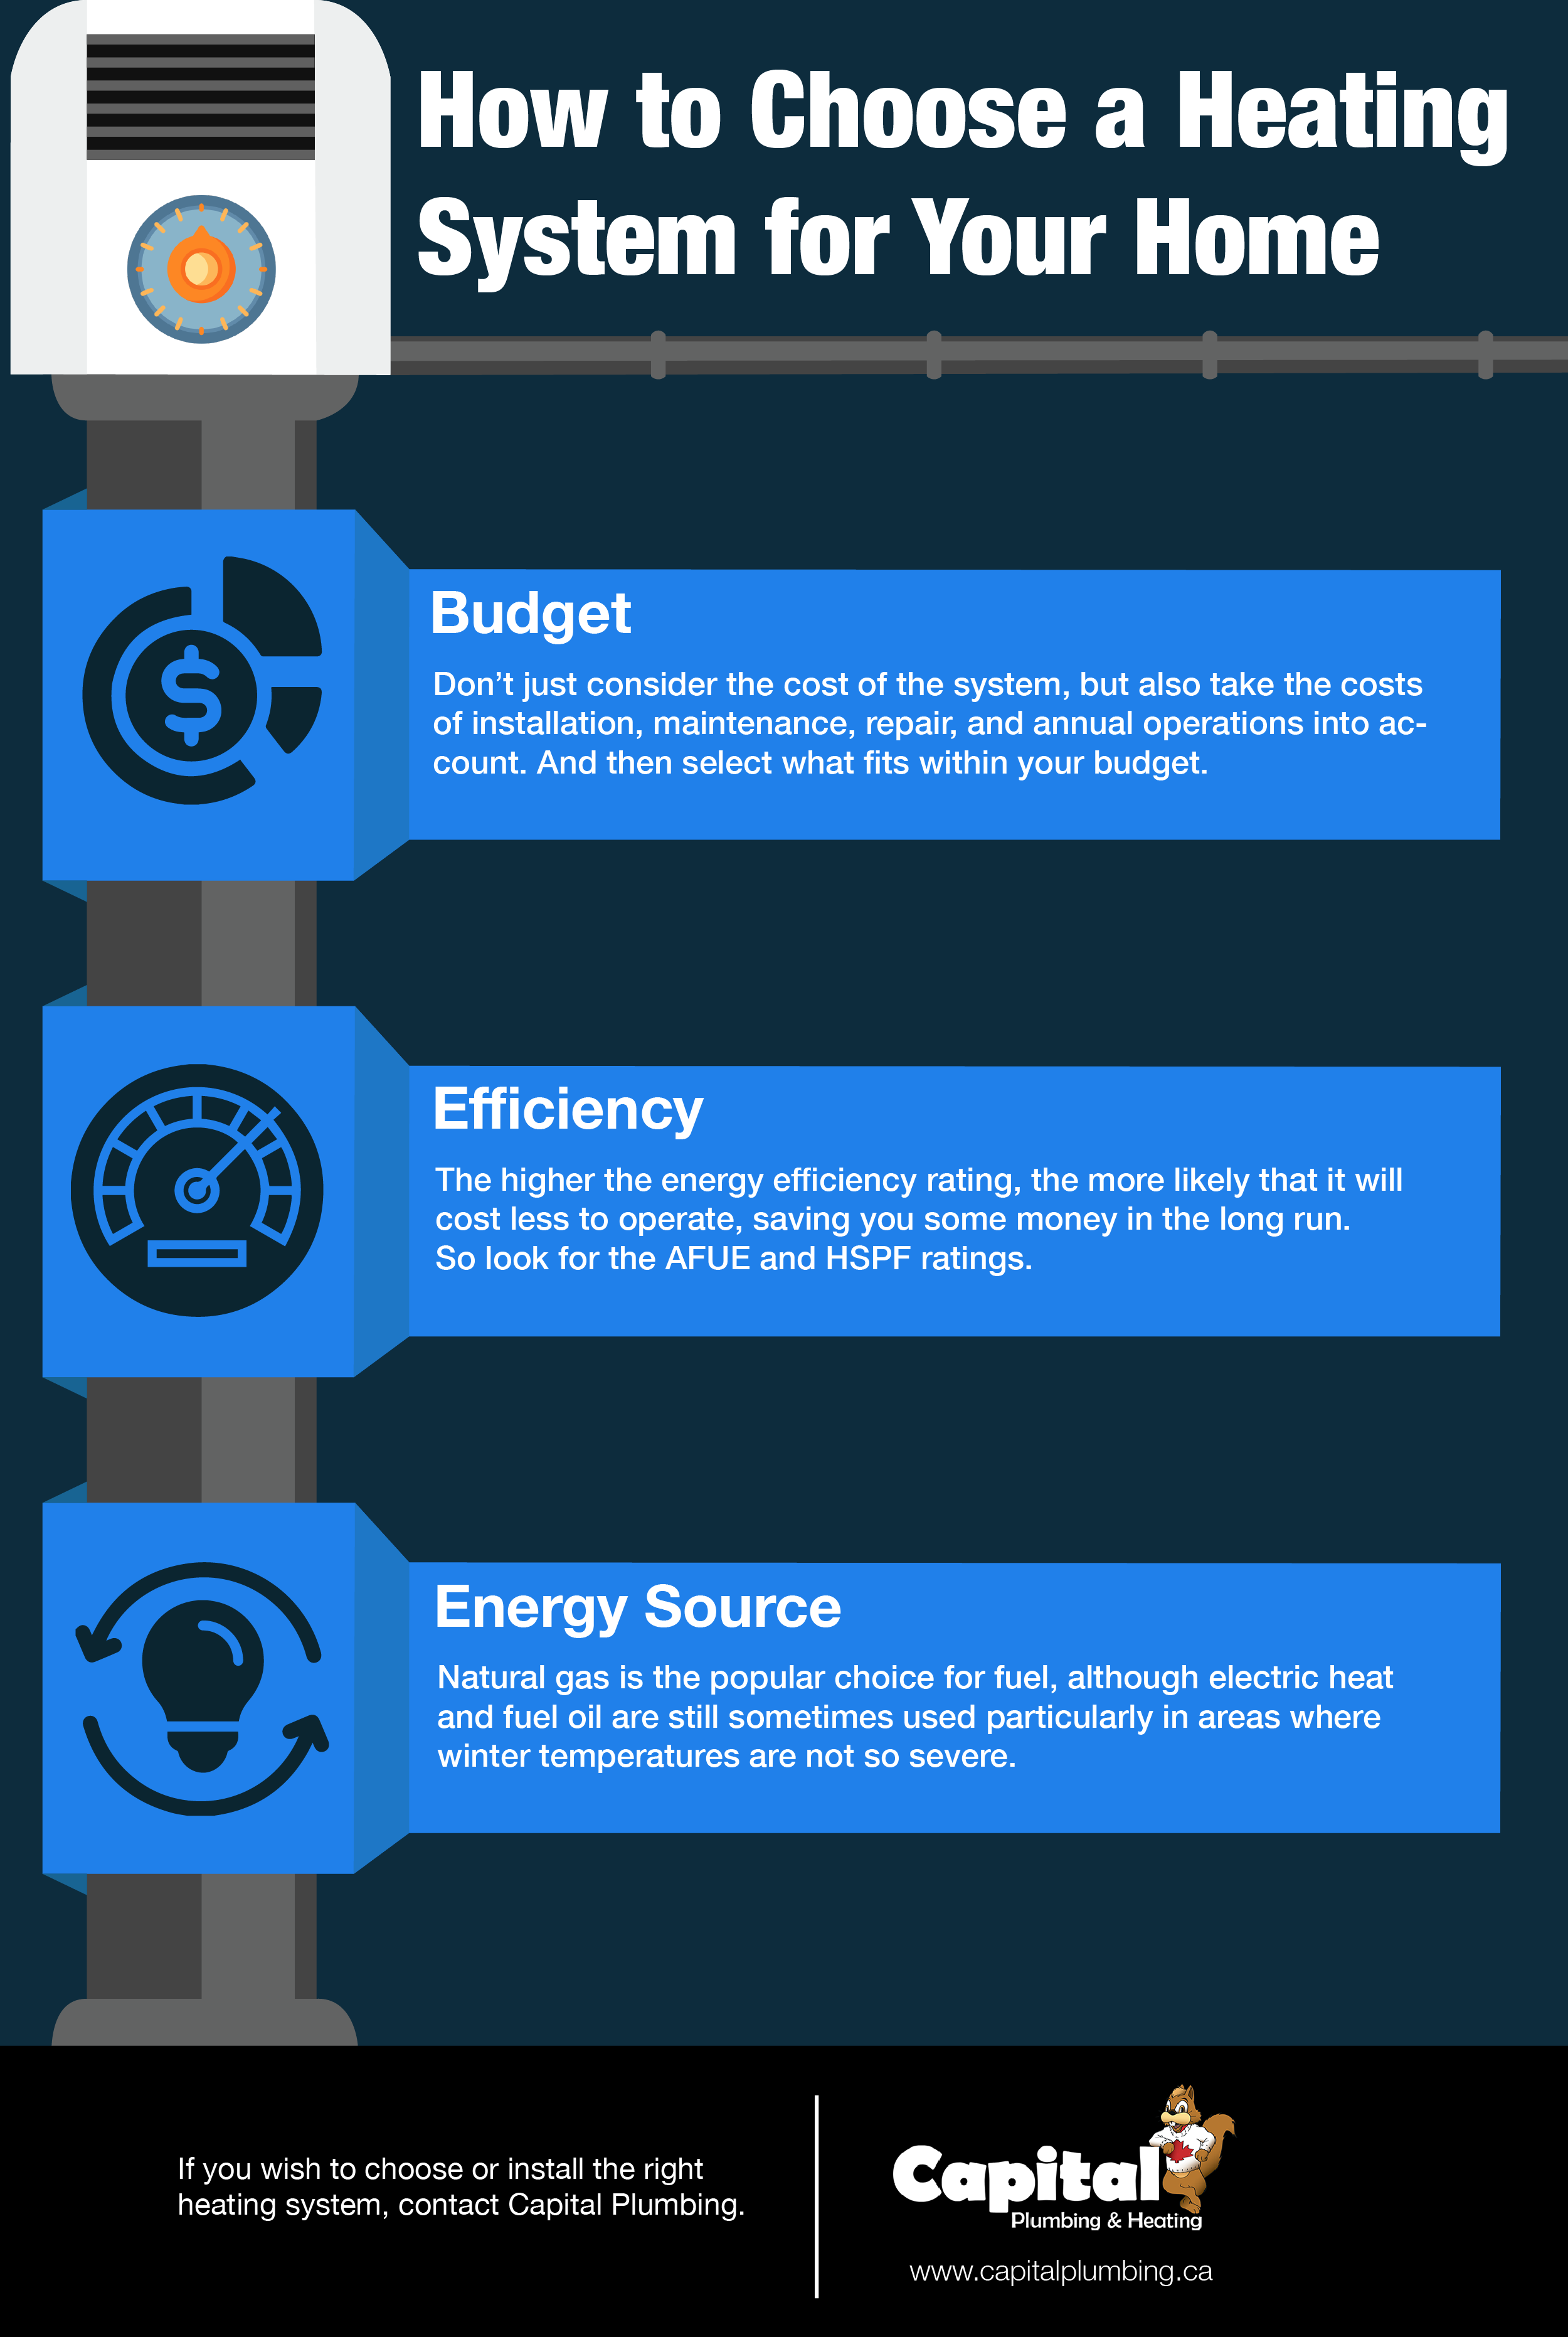 How to Choose a Heating System for Your Home